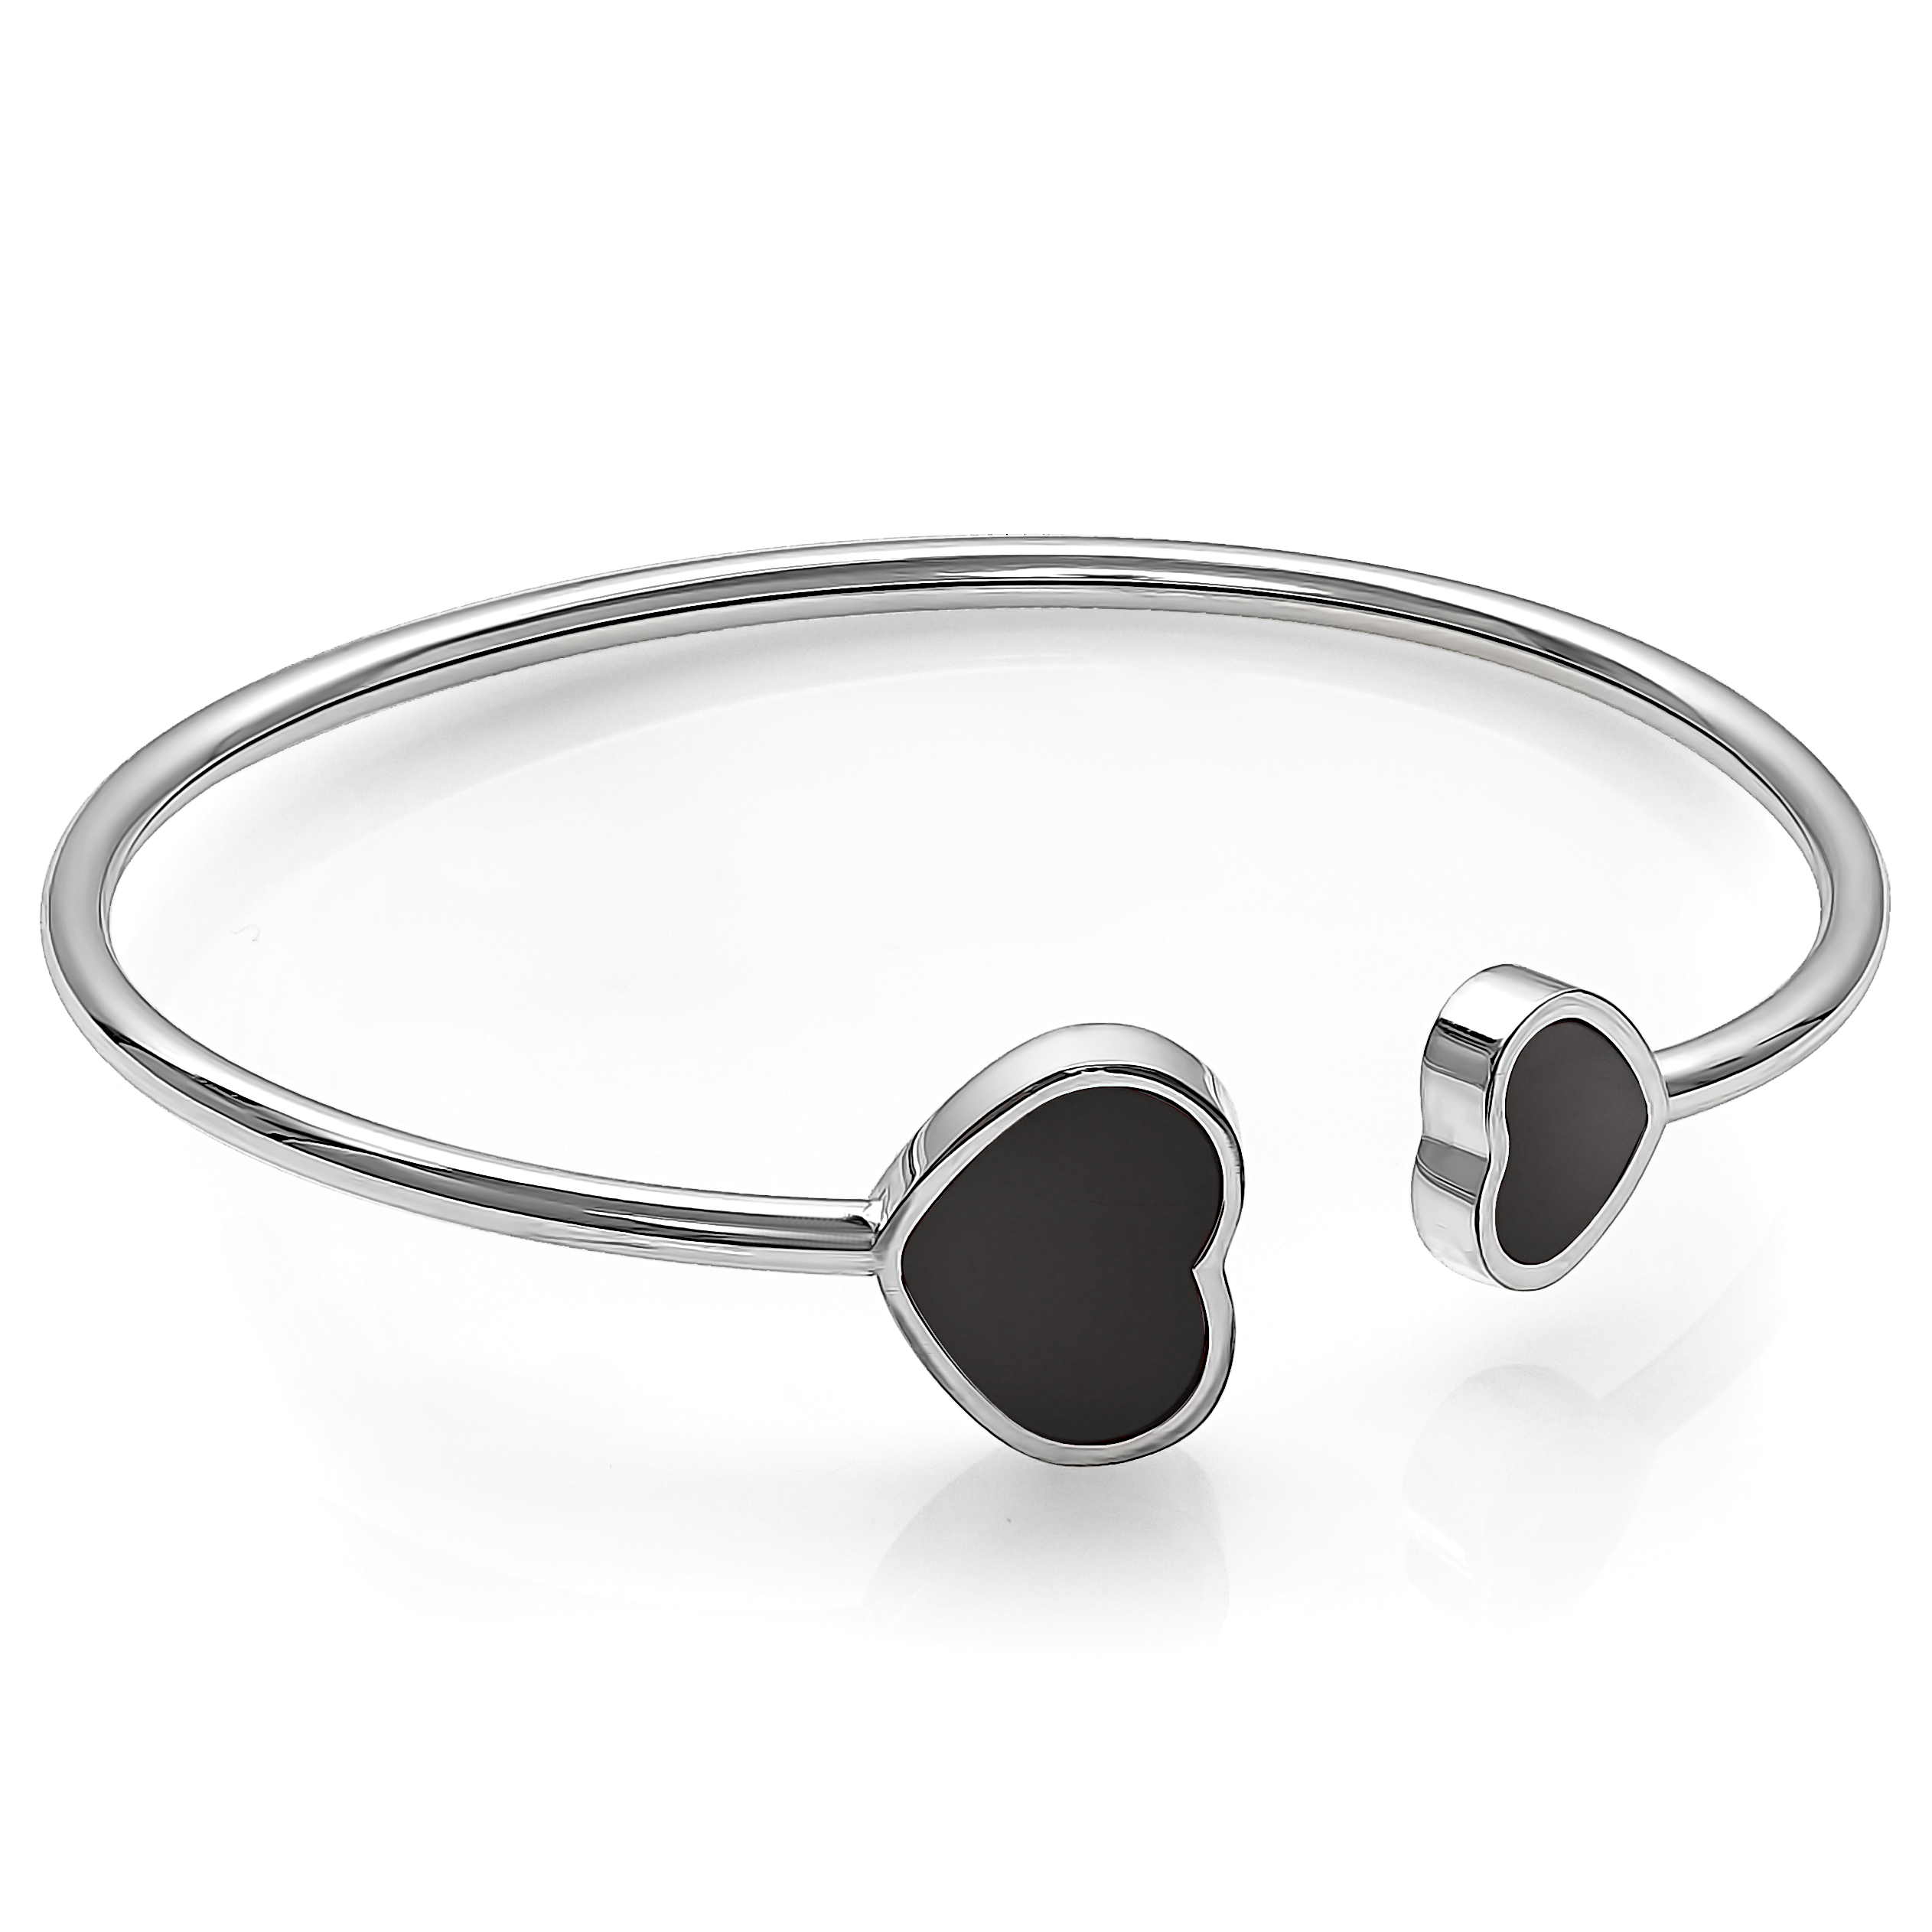 Heart bangle for woman - 2-tone Stainless steel